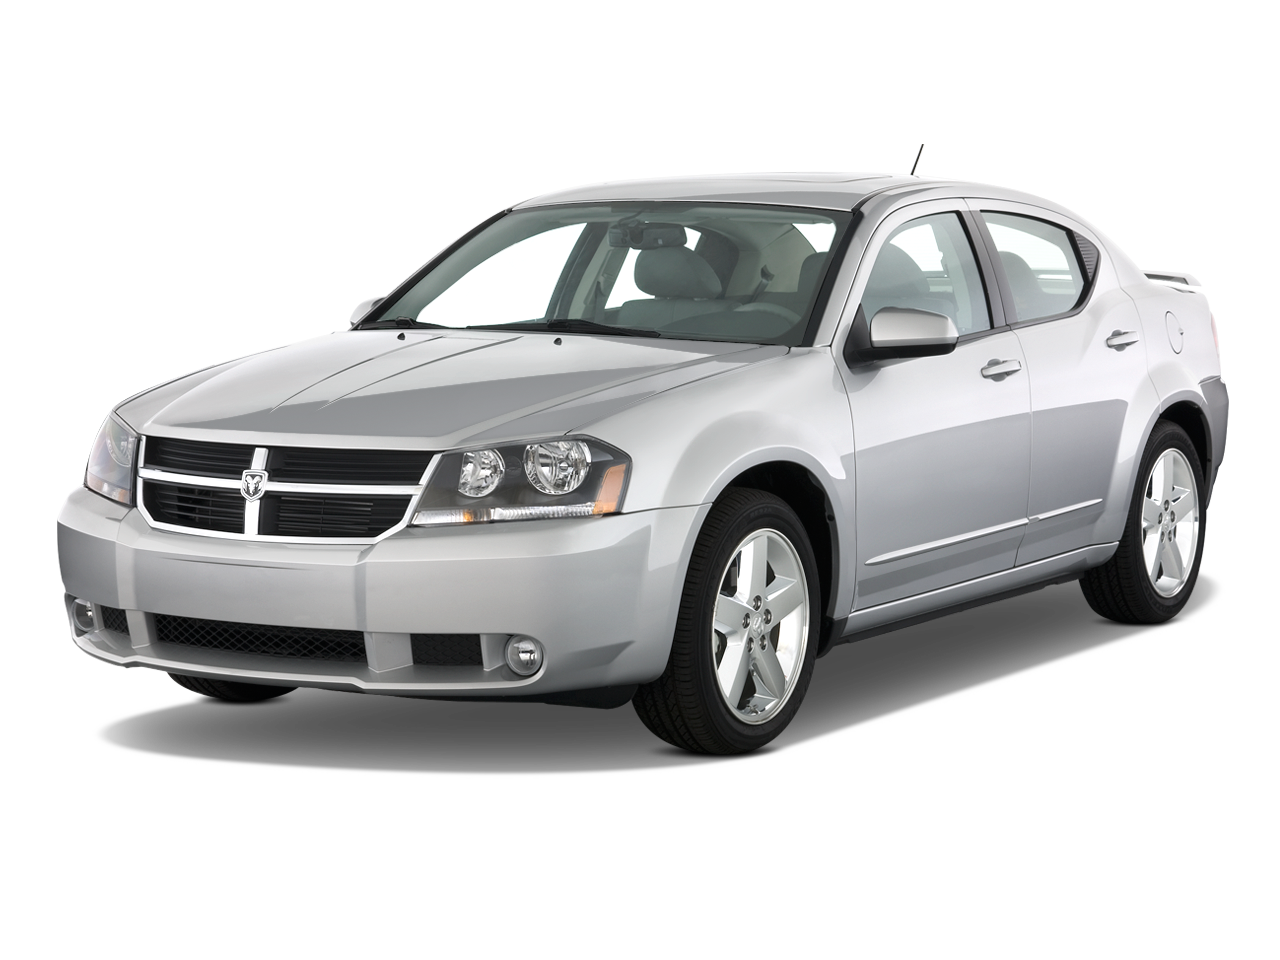 2008 dodge avenger r t dodge midsize sedan review. Black Bedroom Furniture Sets. Home Design Ideas